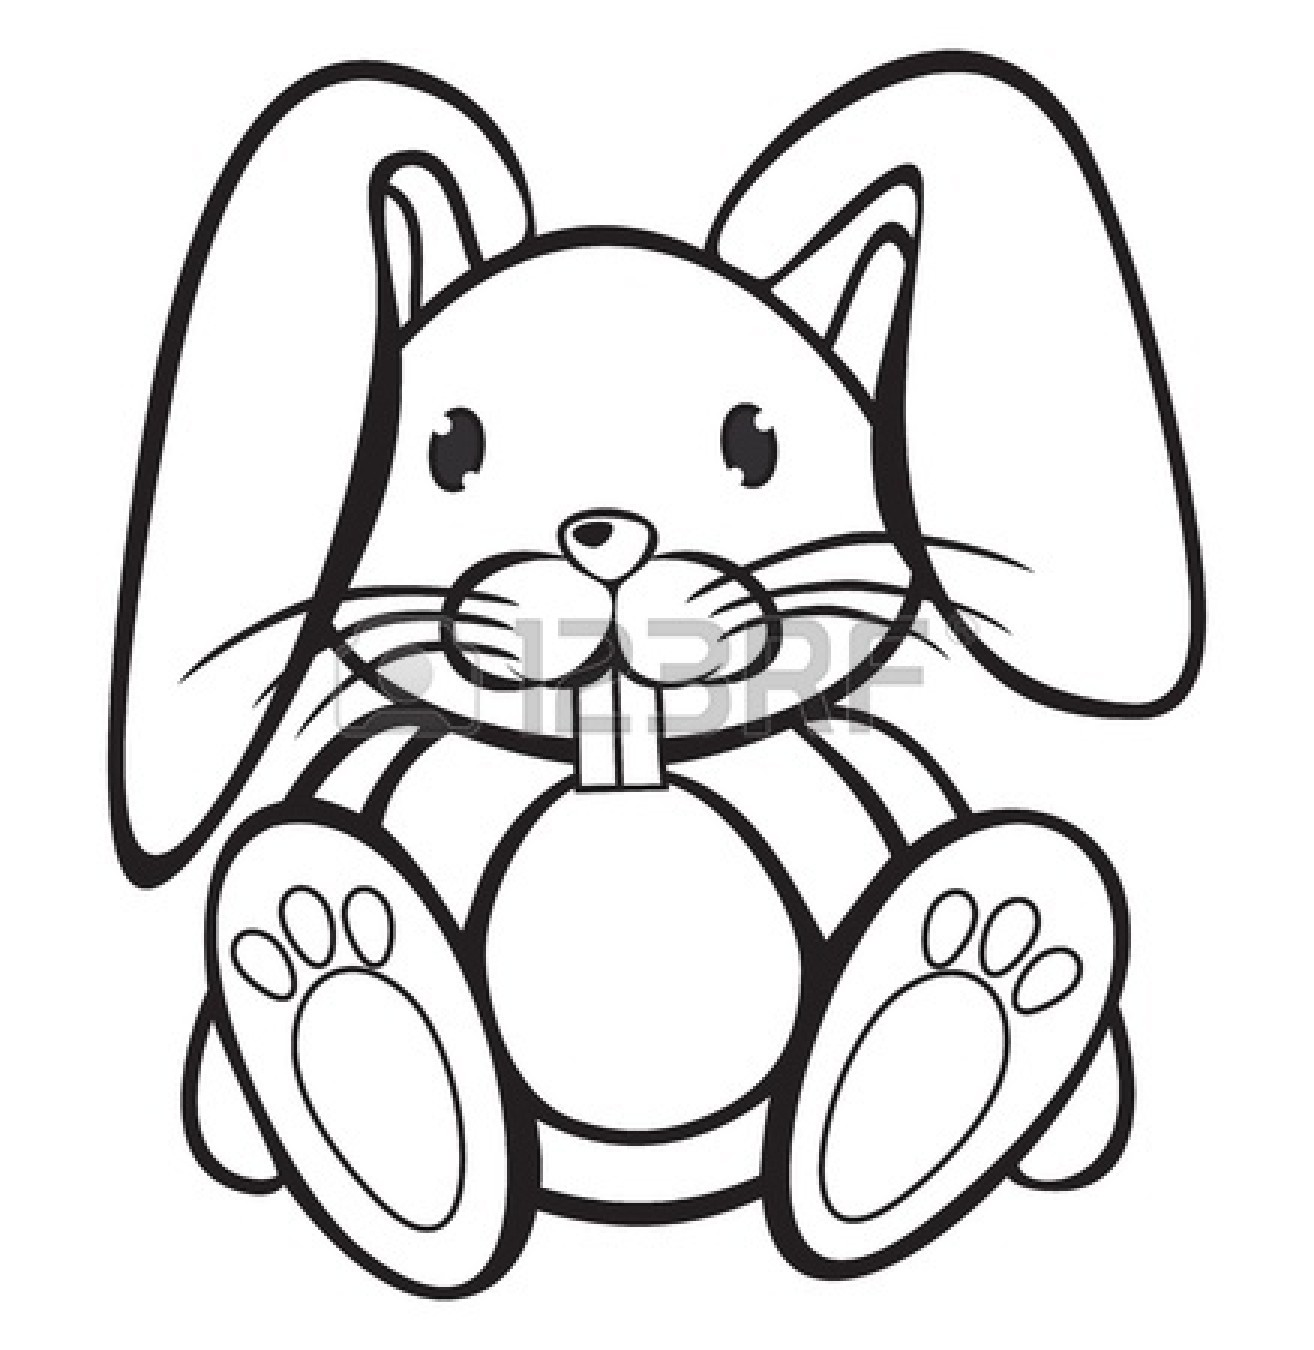 Bunny Face Line Drawing : Bunny clipart black and white panda free